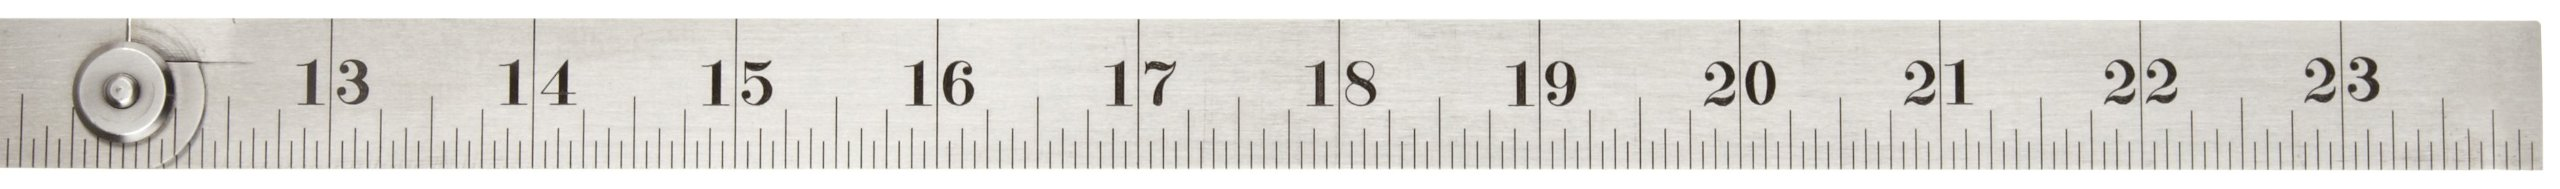 Starrett 471 Steel Folding Rule With Circumference Measurement, 24'' Length, 3/4'' Width, 1/32'' Thickness by Starrett (Image #2)